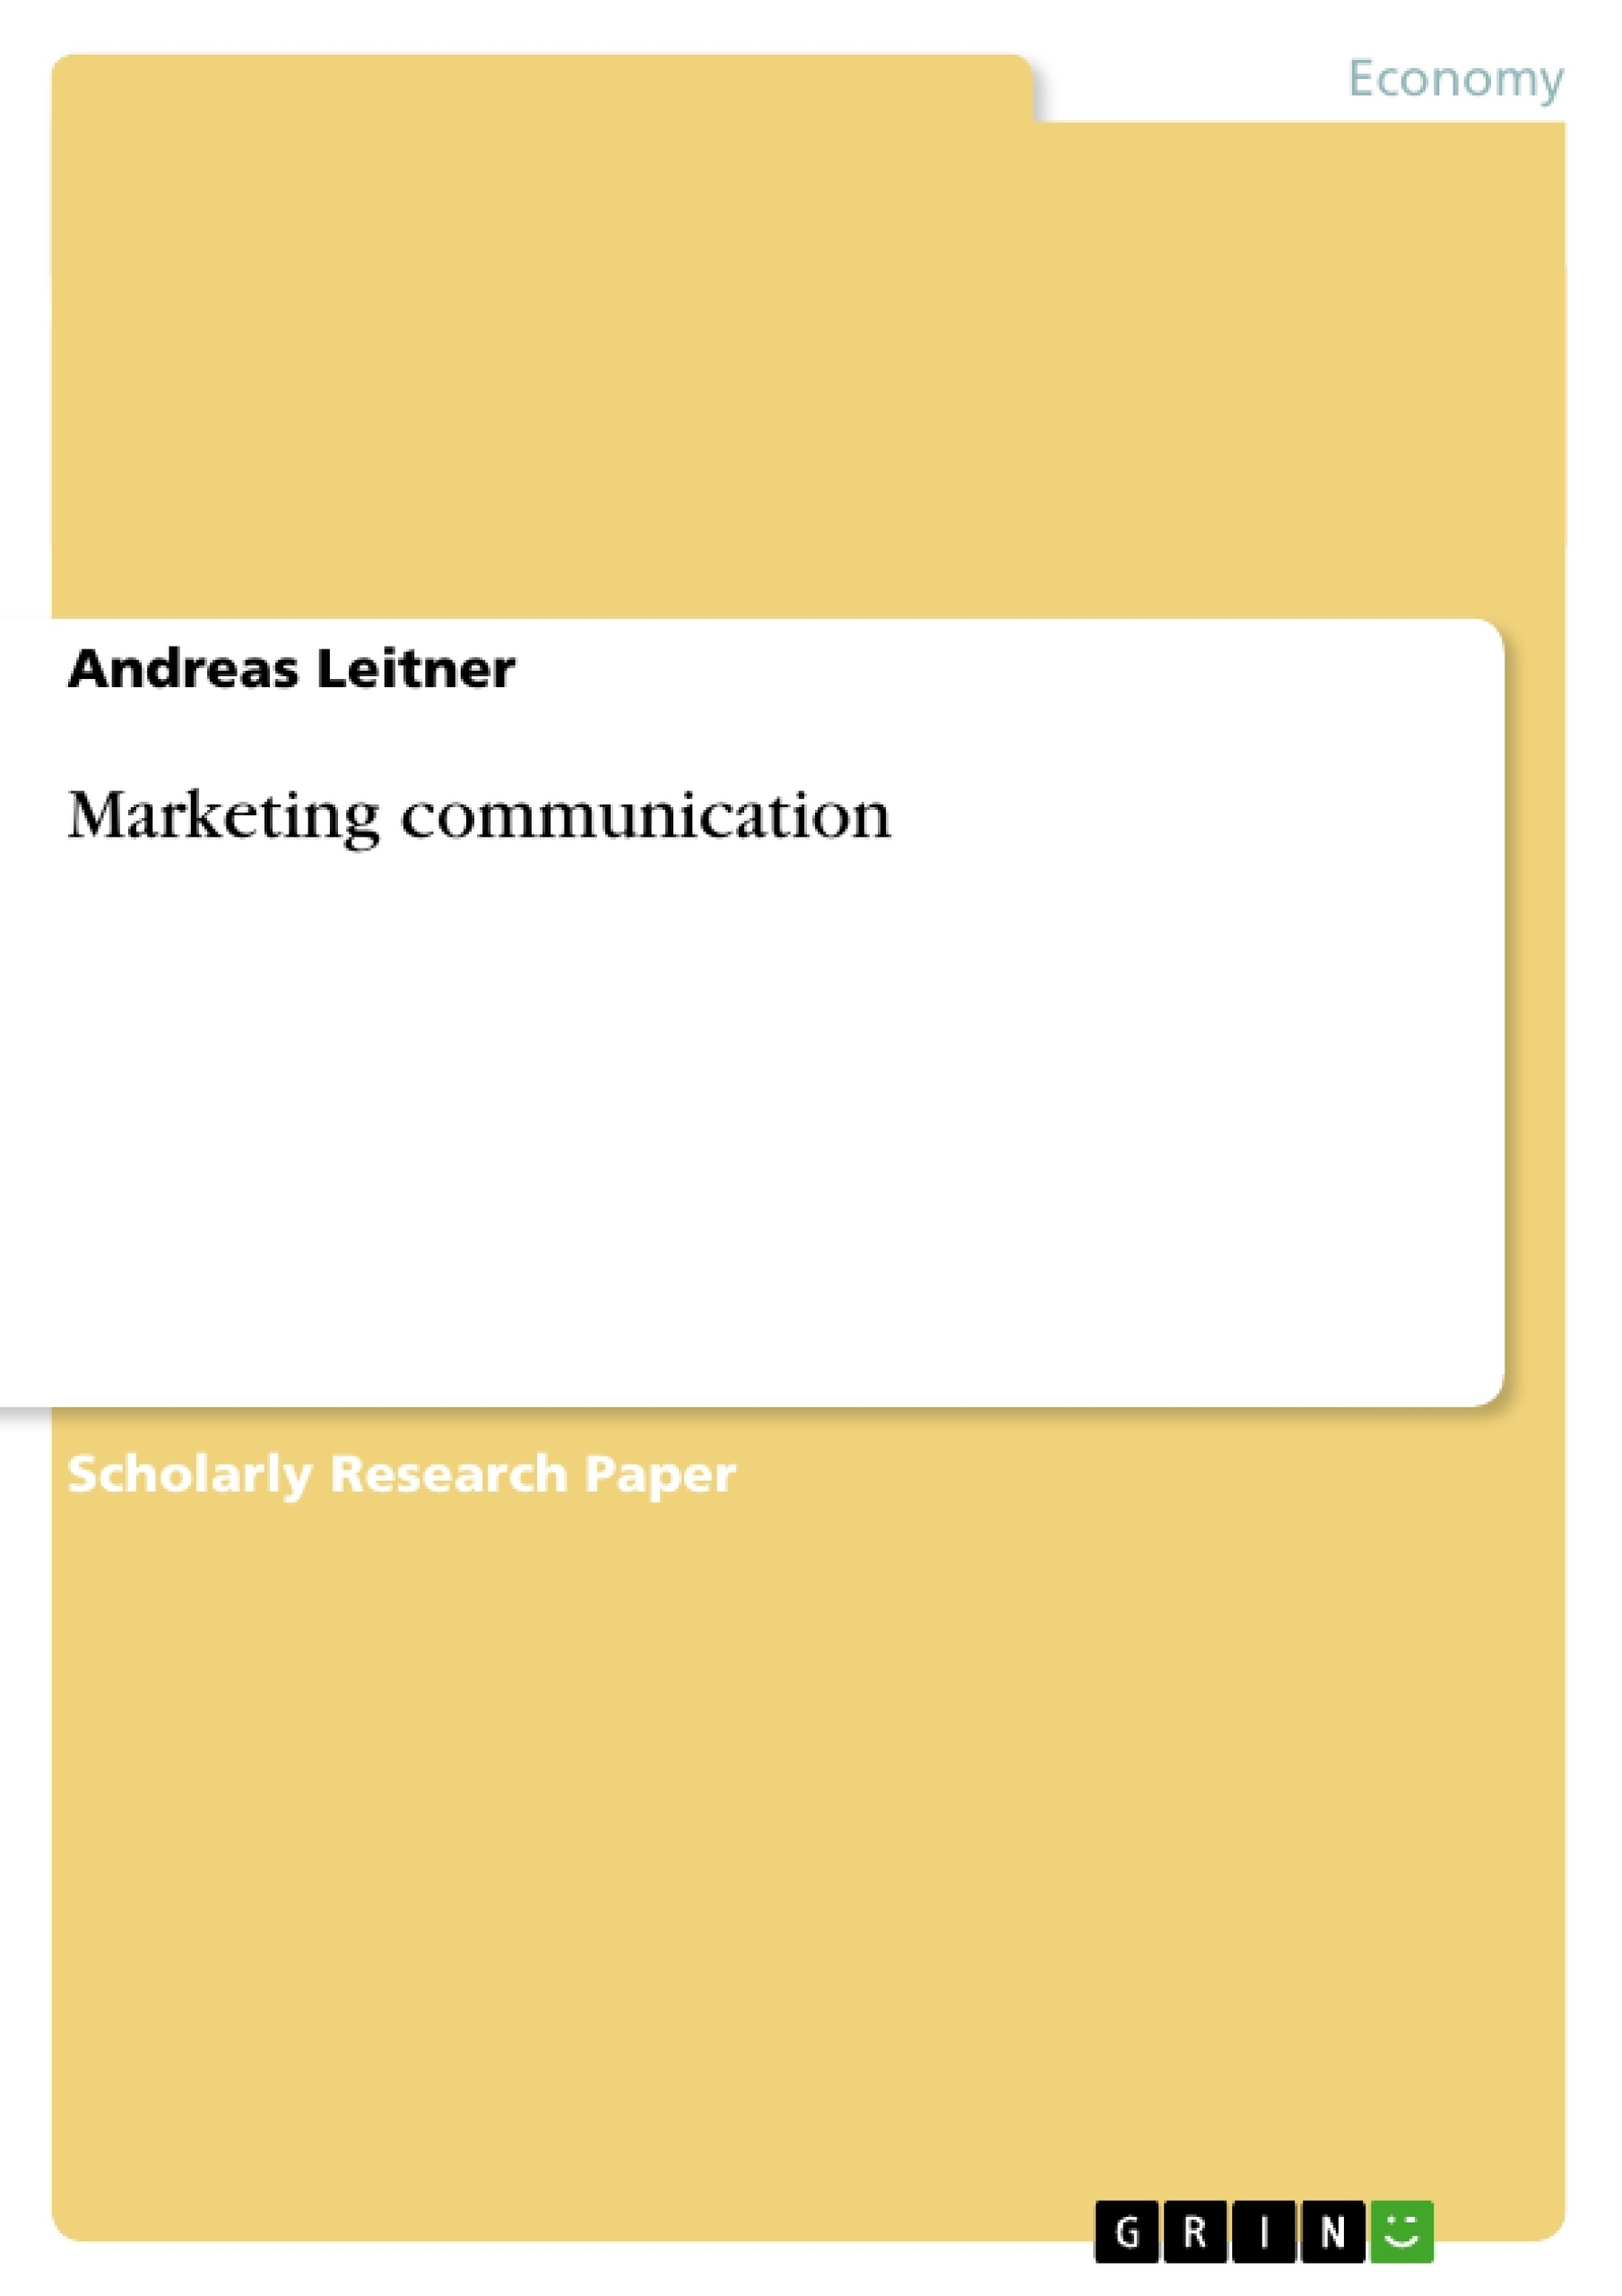 marketing communications thesis Integrated marketing communication strategies in ohio agribusinesses thesis presented in partial fulfillment of the requirements for the degree master of science in the graduate school of the ohio state university by stacy ellen jewell, bs graduate program in agricultural and extension education the ohio.